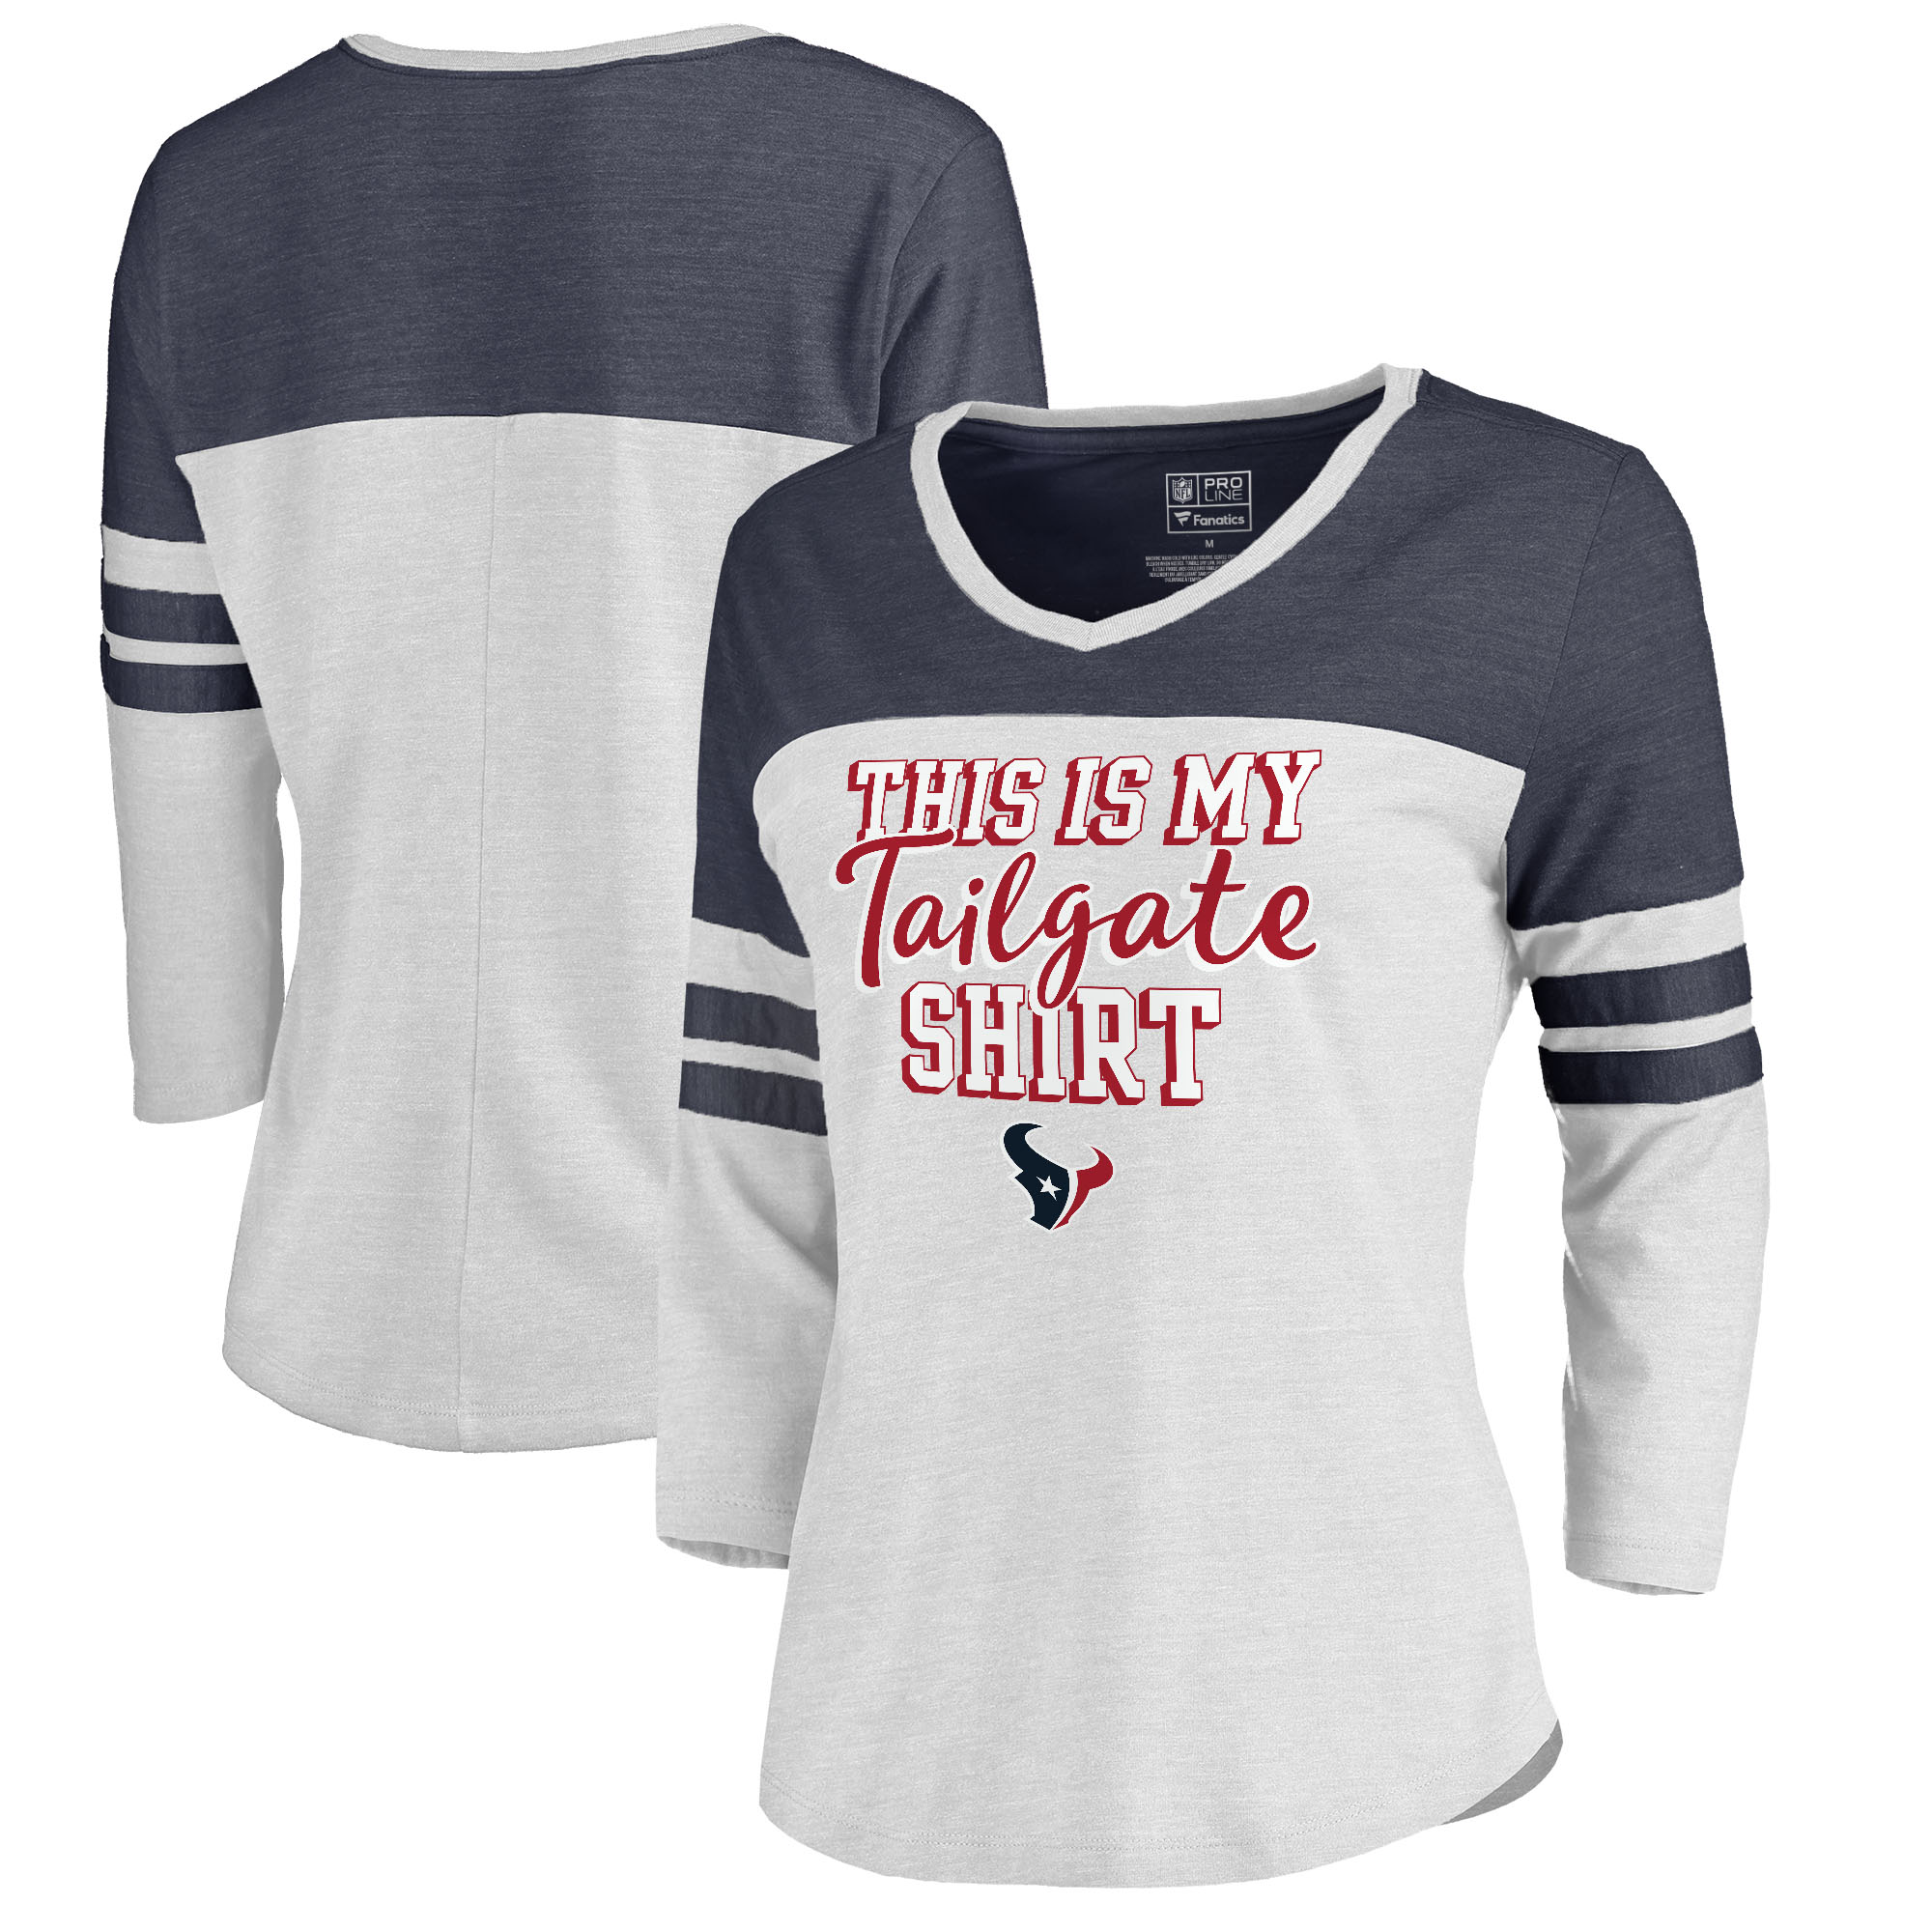 Houston Texans NFL Pro Line by Fanatics Branded Women's Plus Size Air Color Block Tri-Blend 3/4-Sleeve T-Shirt - White